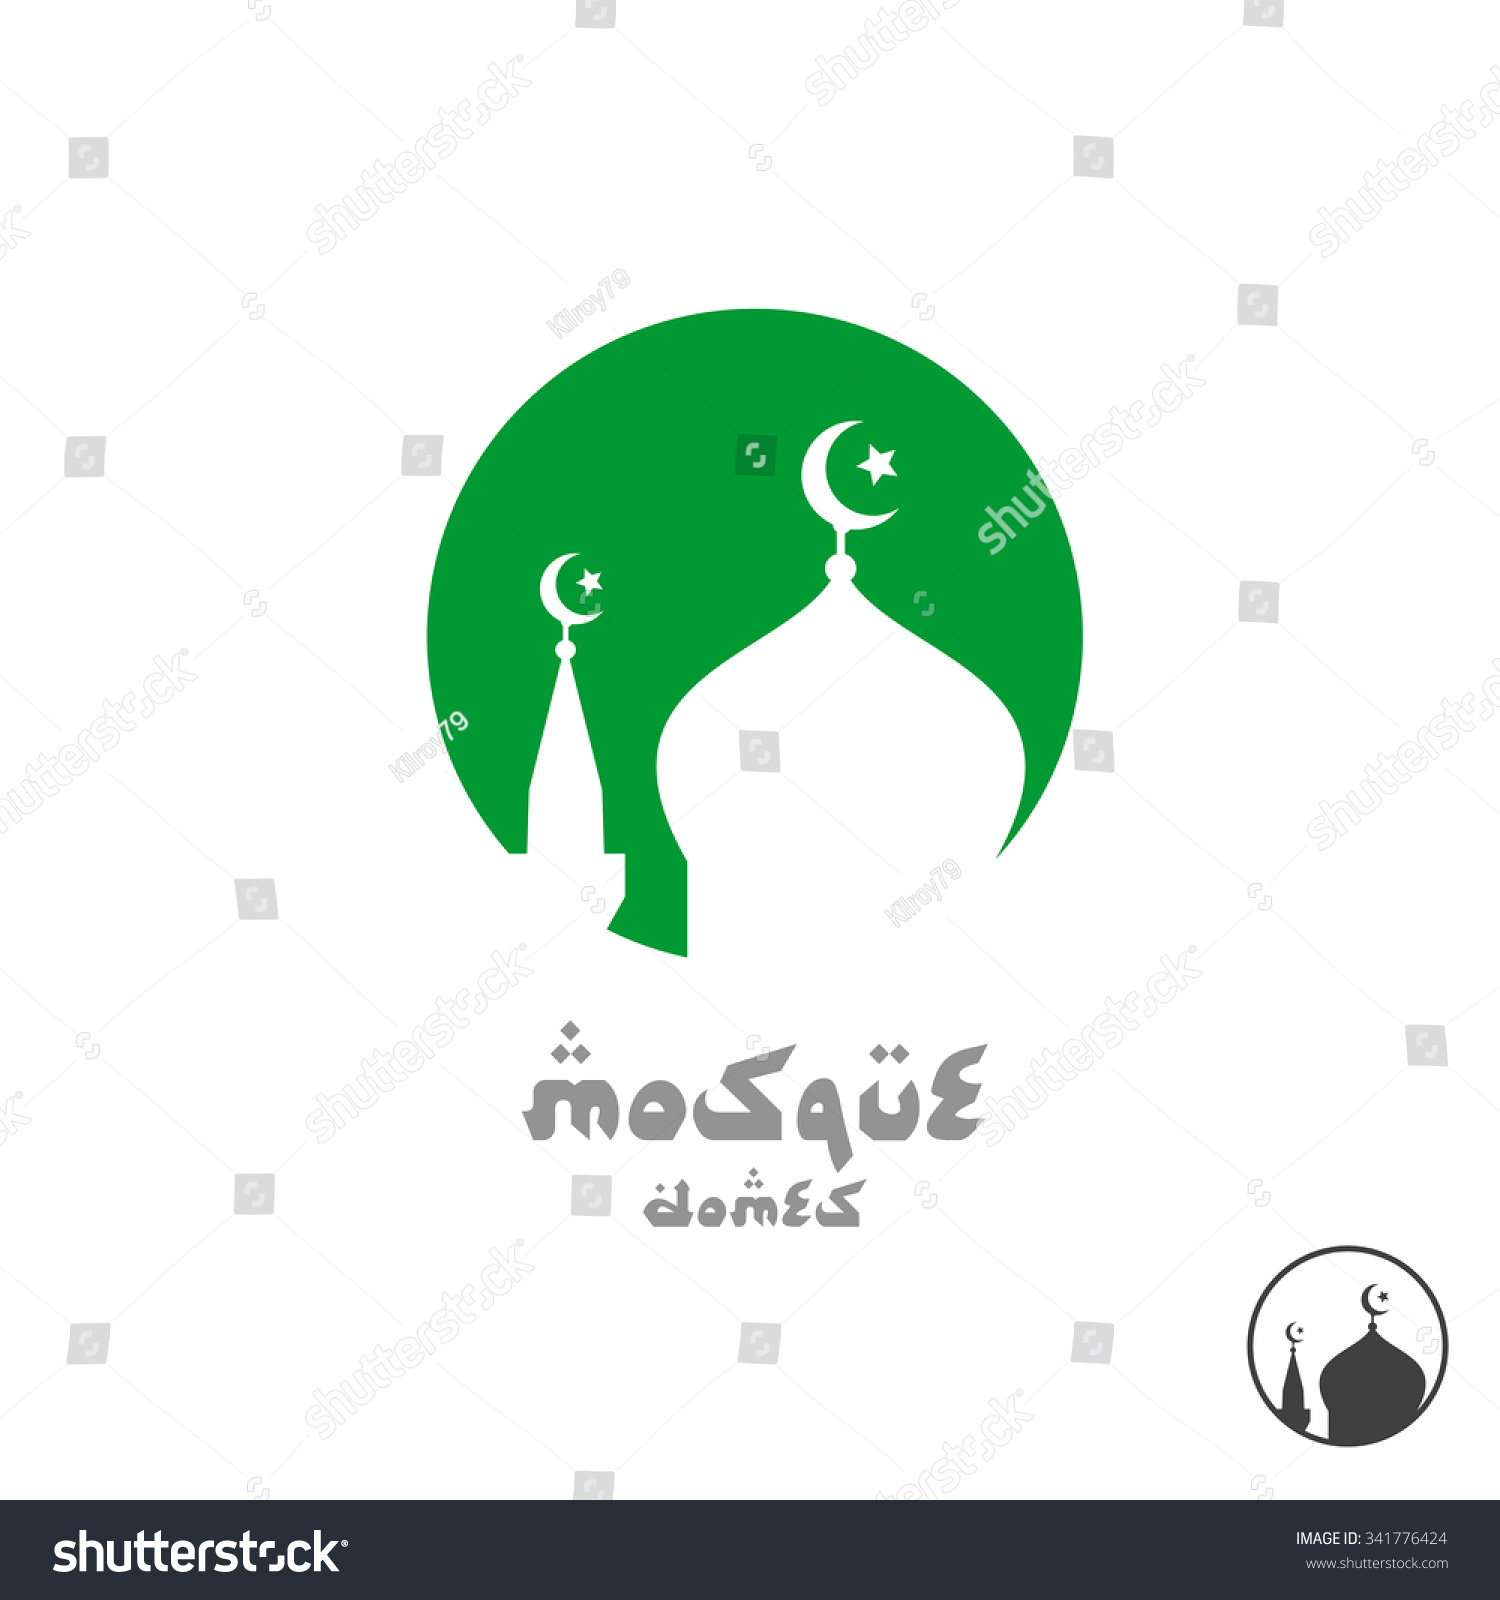 Arabian religious logo mosque silhouette round stock vector arabian religious logo mosque silhouette in a round sign biocorpaavc